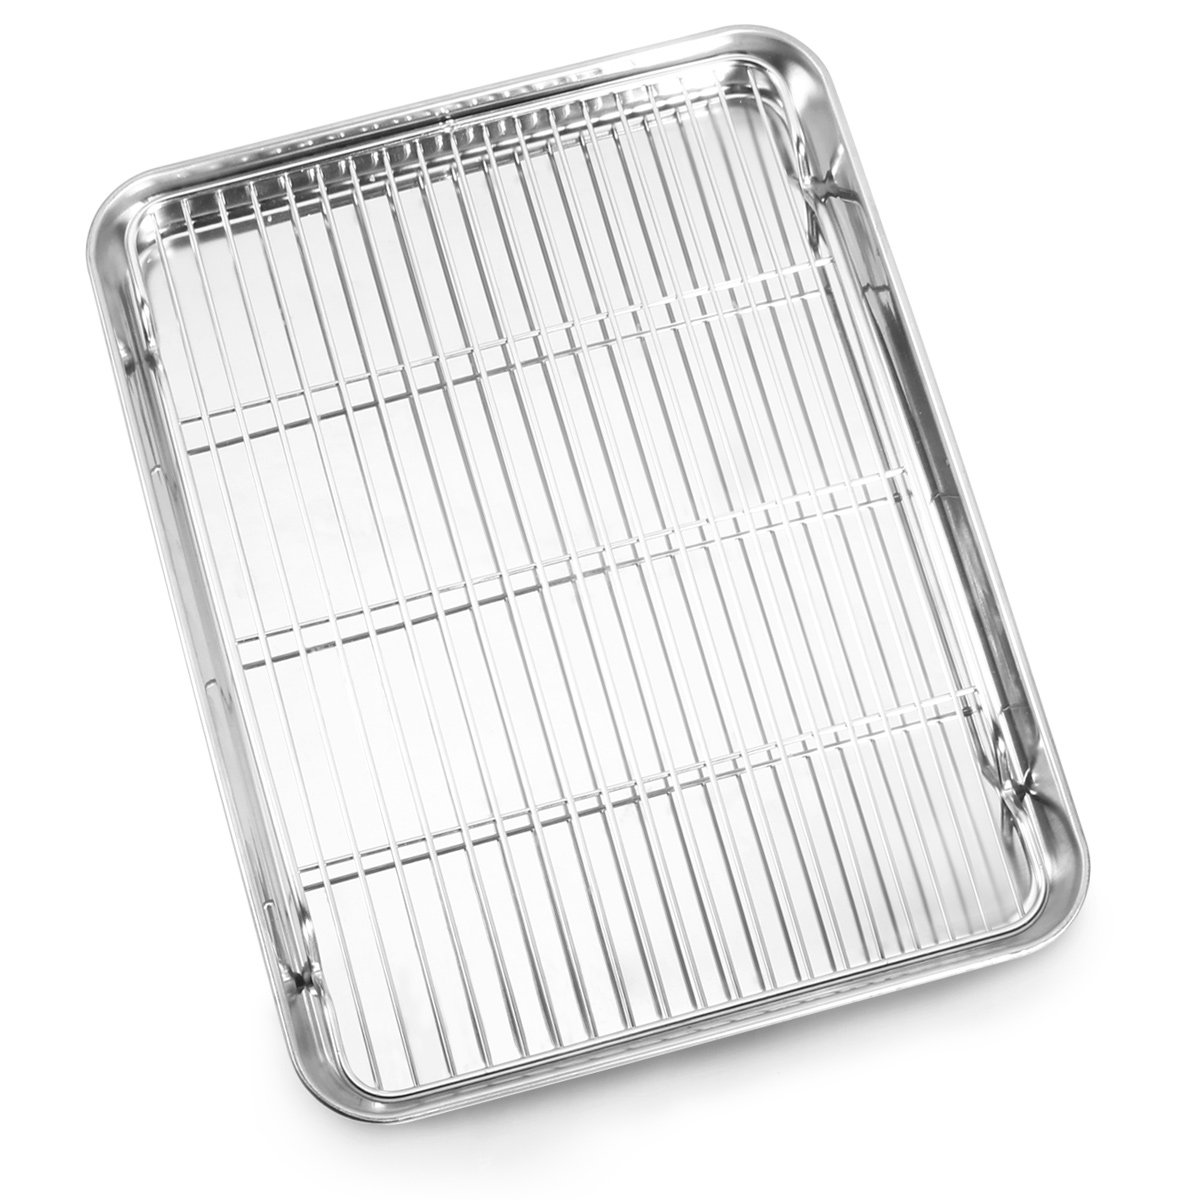 Bastwe Baking Sheet and Cooling Rack Set, Stainless Steel Commercial Grade Cookie Sheet and Rack Set, 12 x 10 x 1 inch, Healthy & Nontoxic & Rustproof & Easy Clean & Dishwasher Safe